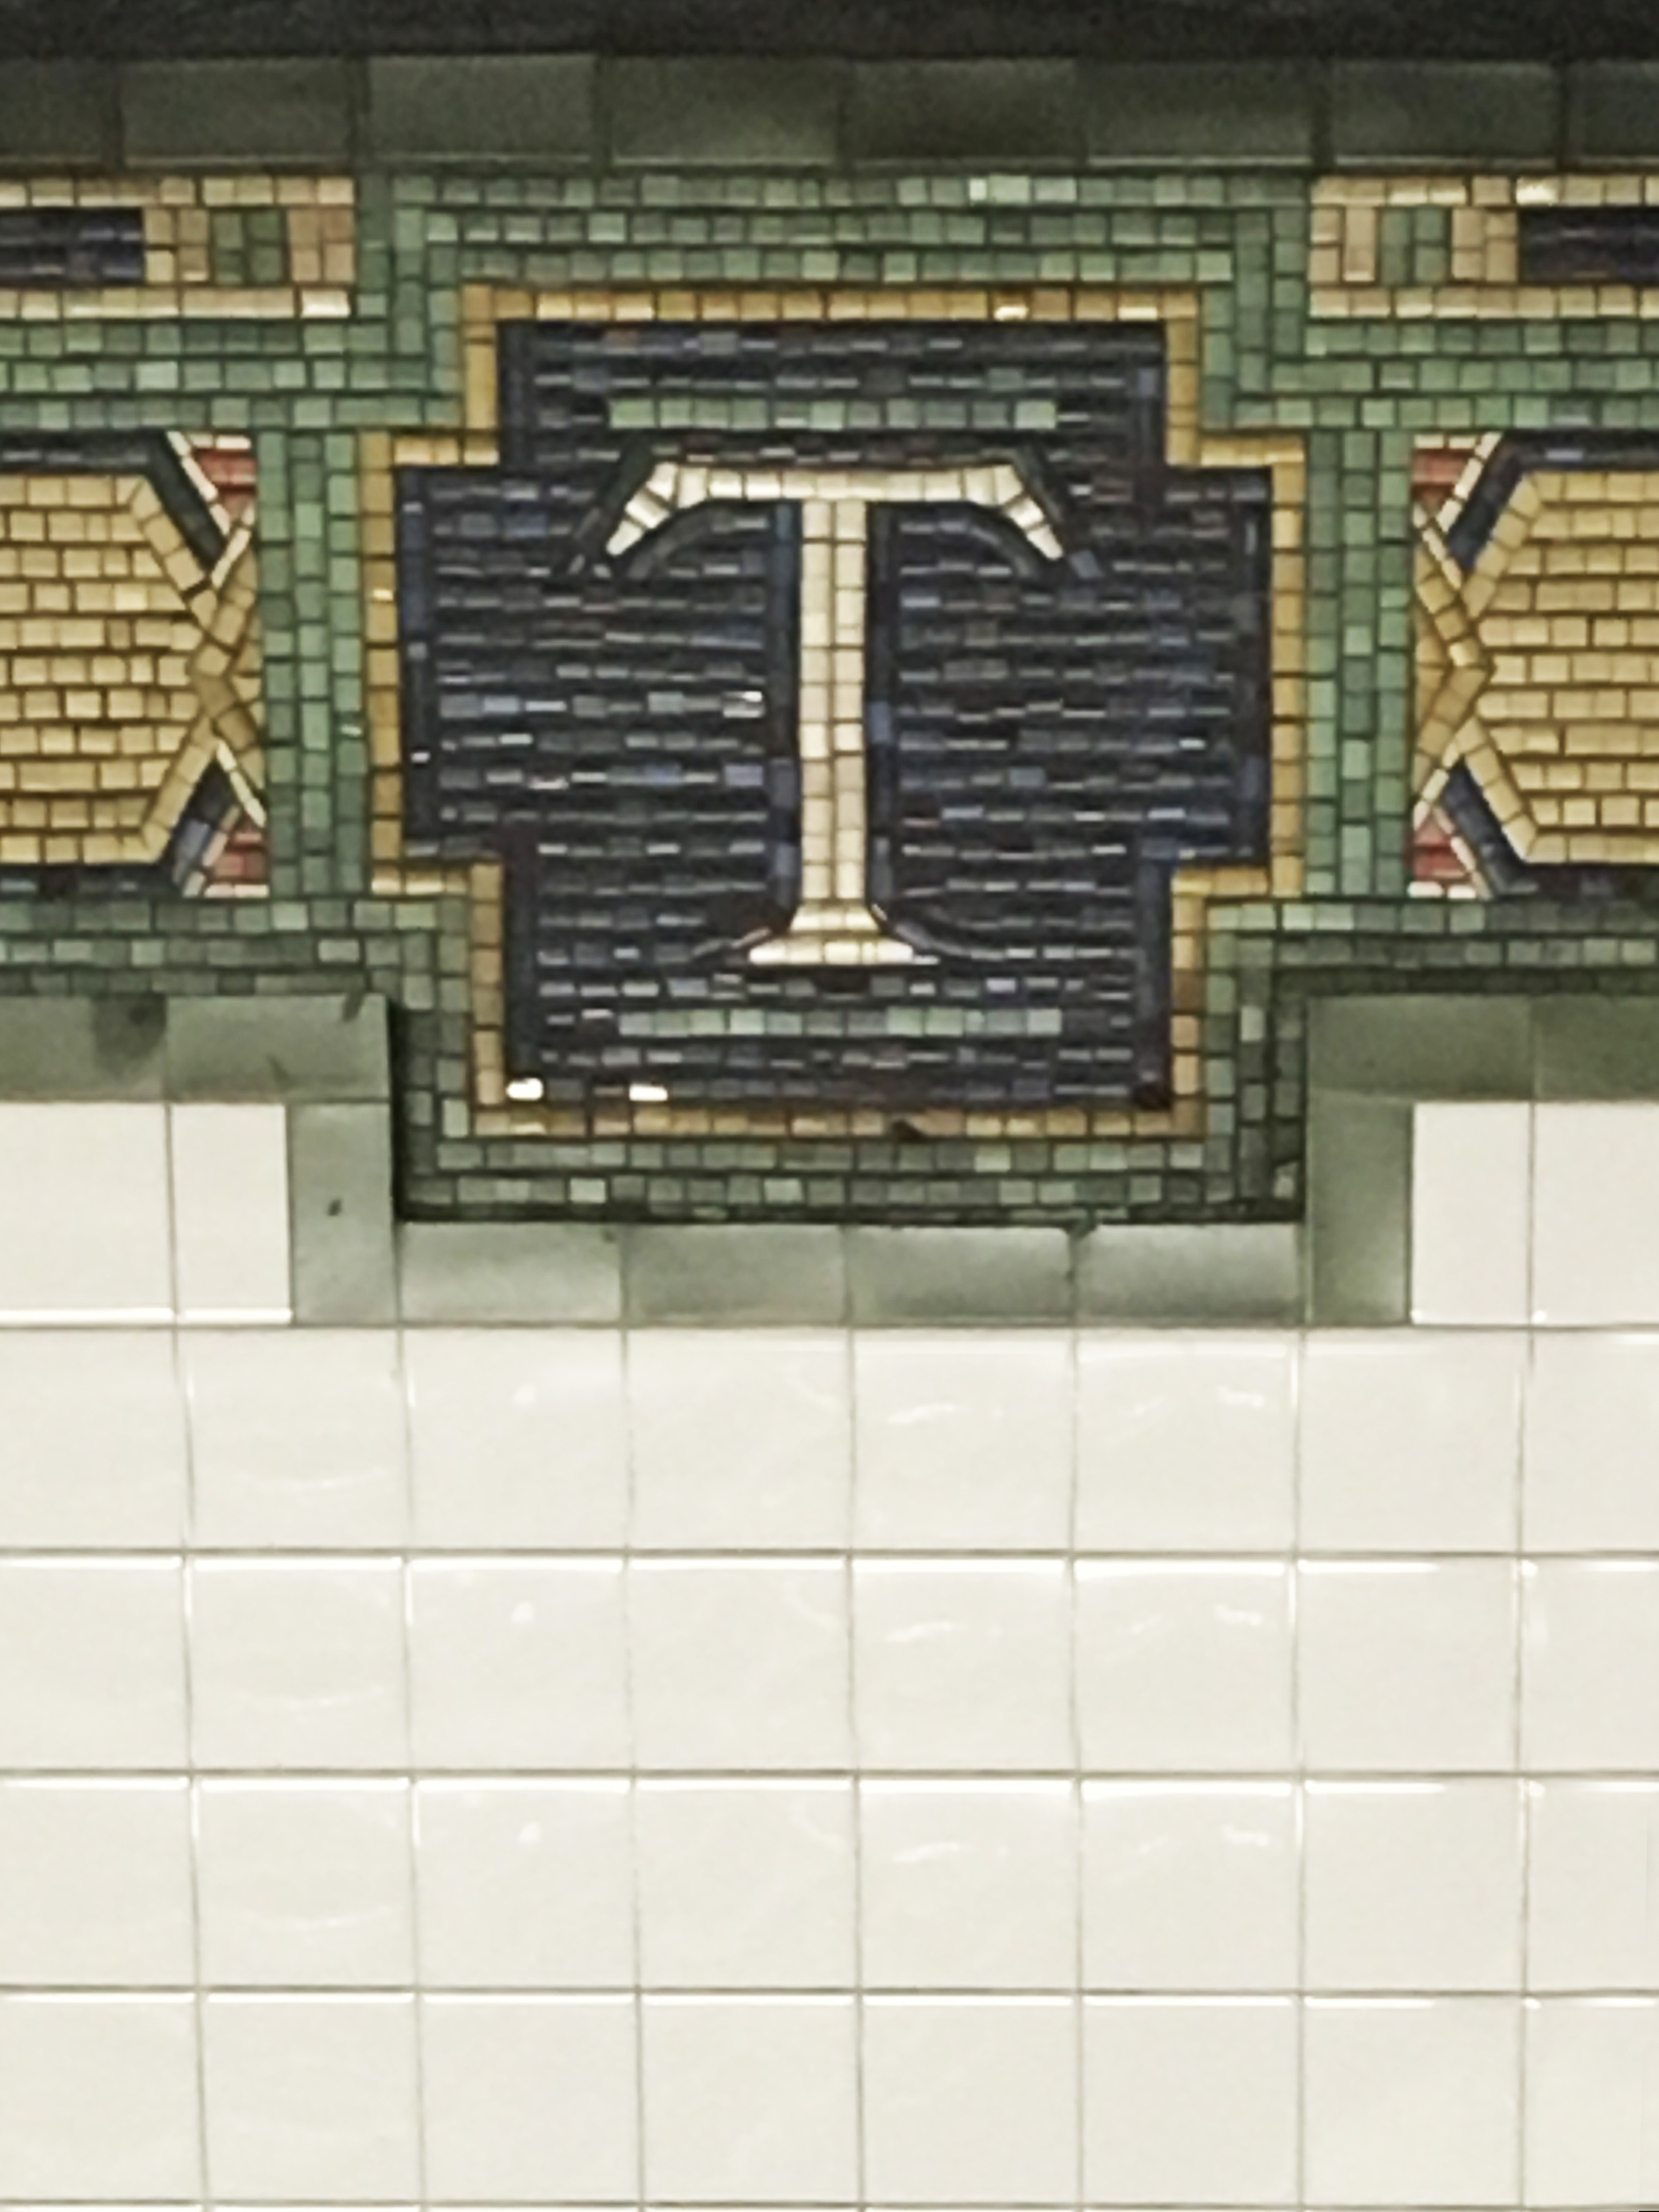 The beautiful tile work in all the subway stations always makes me wonder how long it took them to make and why we don't value craftsmanship like that anymore